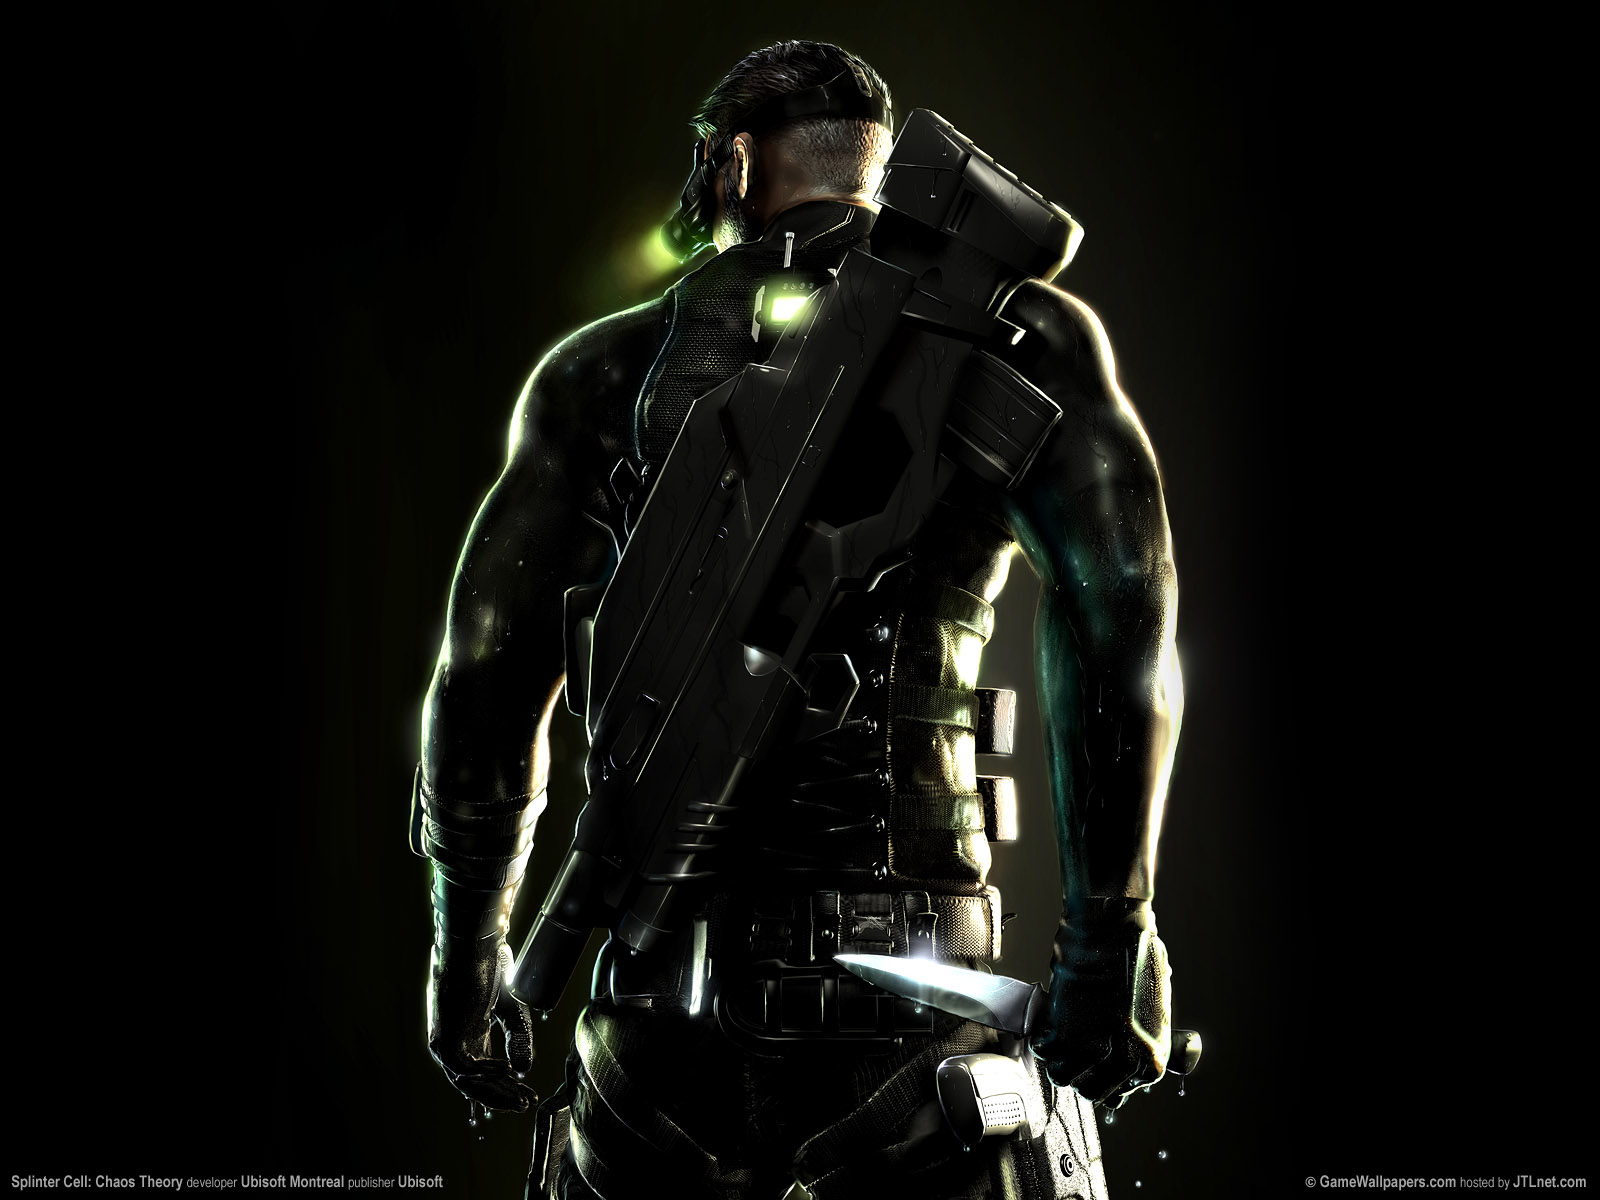 1600x1200 Splinter Cell: Chaos Theory desktop PC and Mac ...